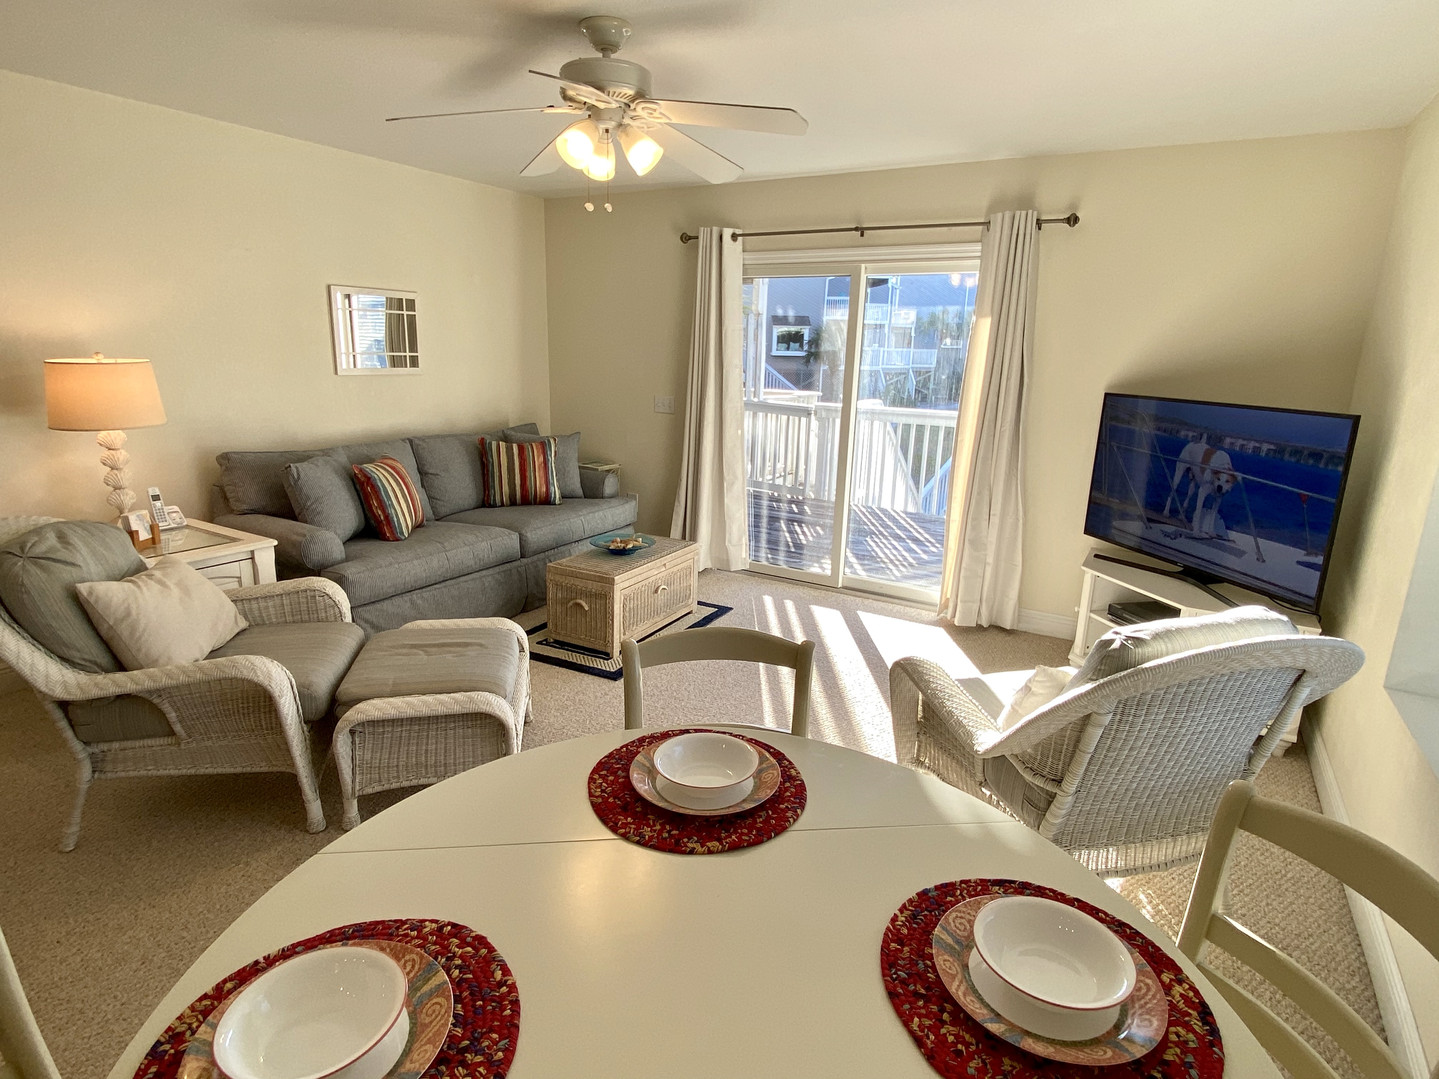 Dining & living area opens onto large deck